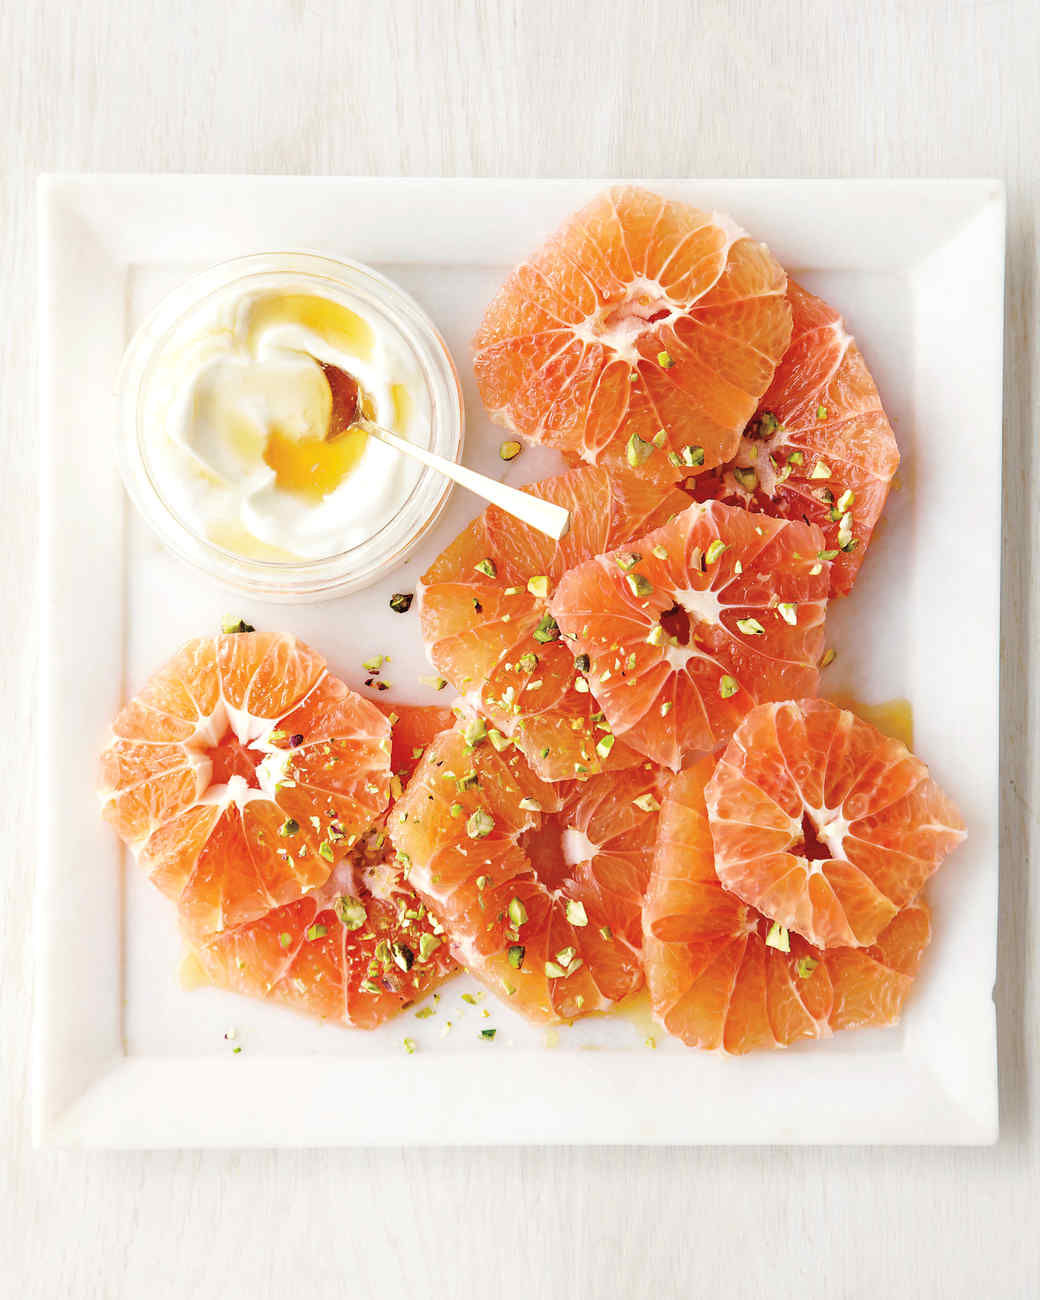 Pomelo with Yogurt and Pistachios